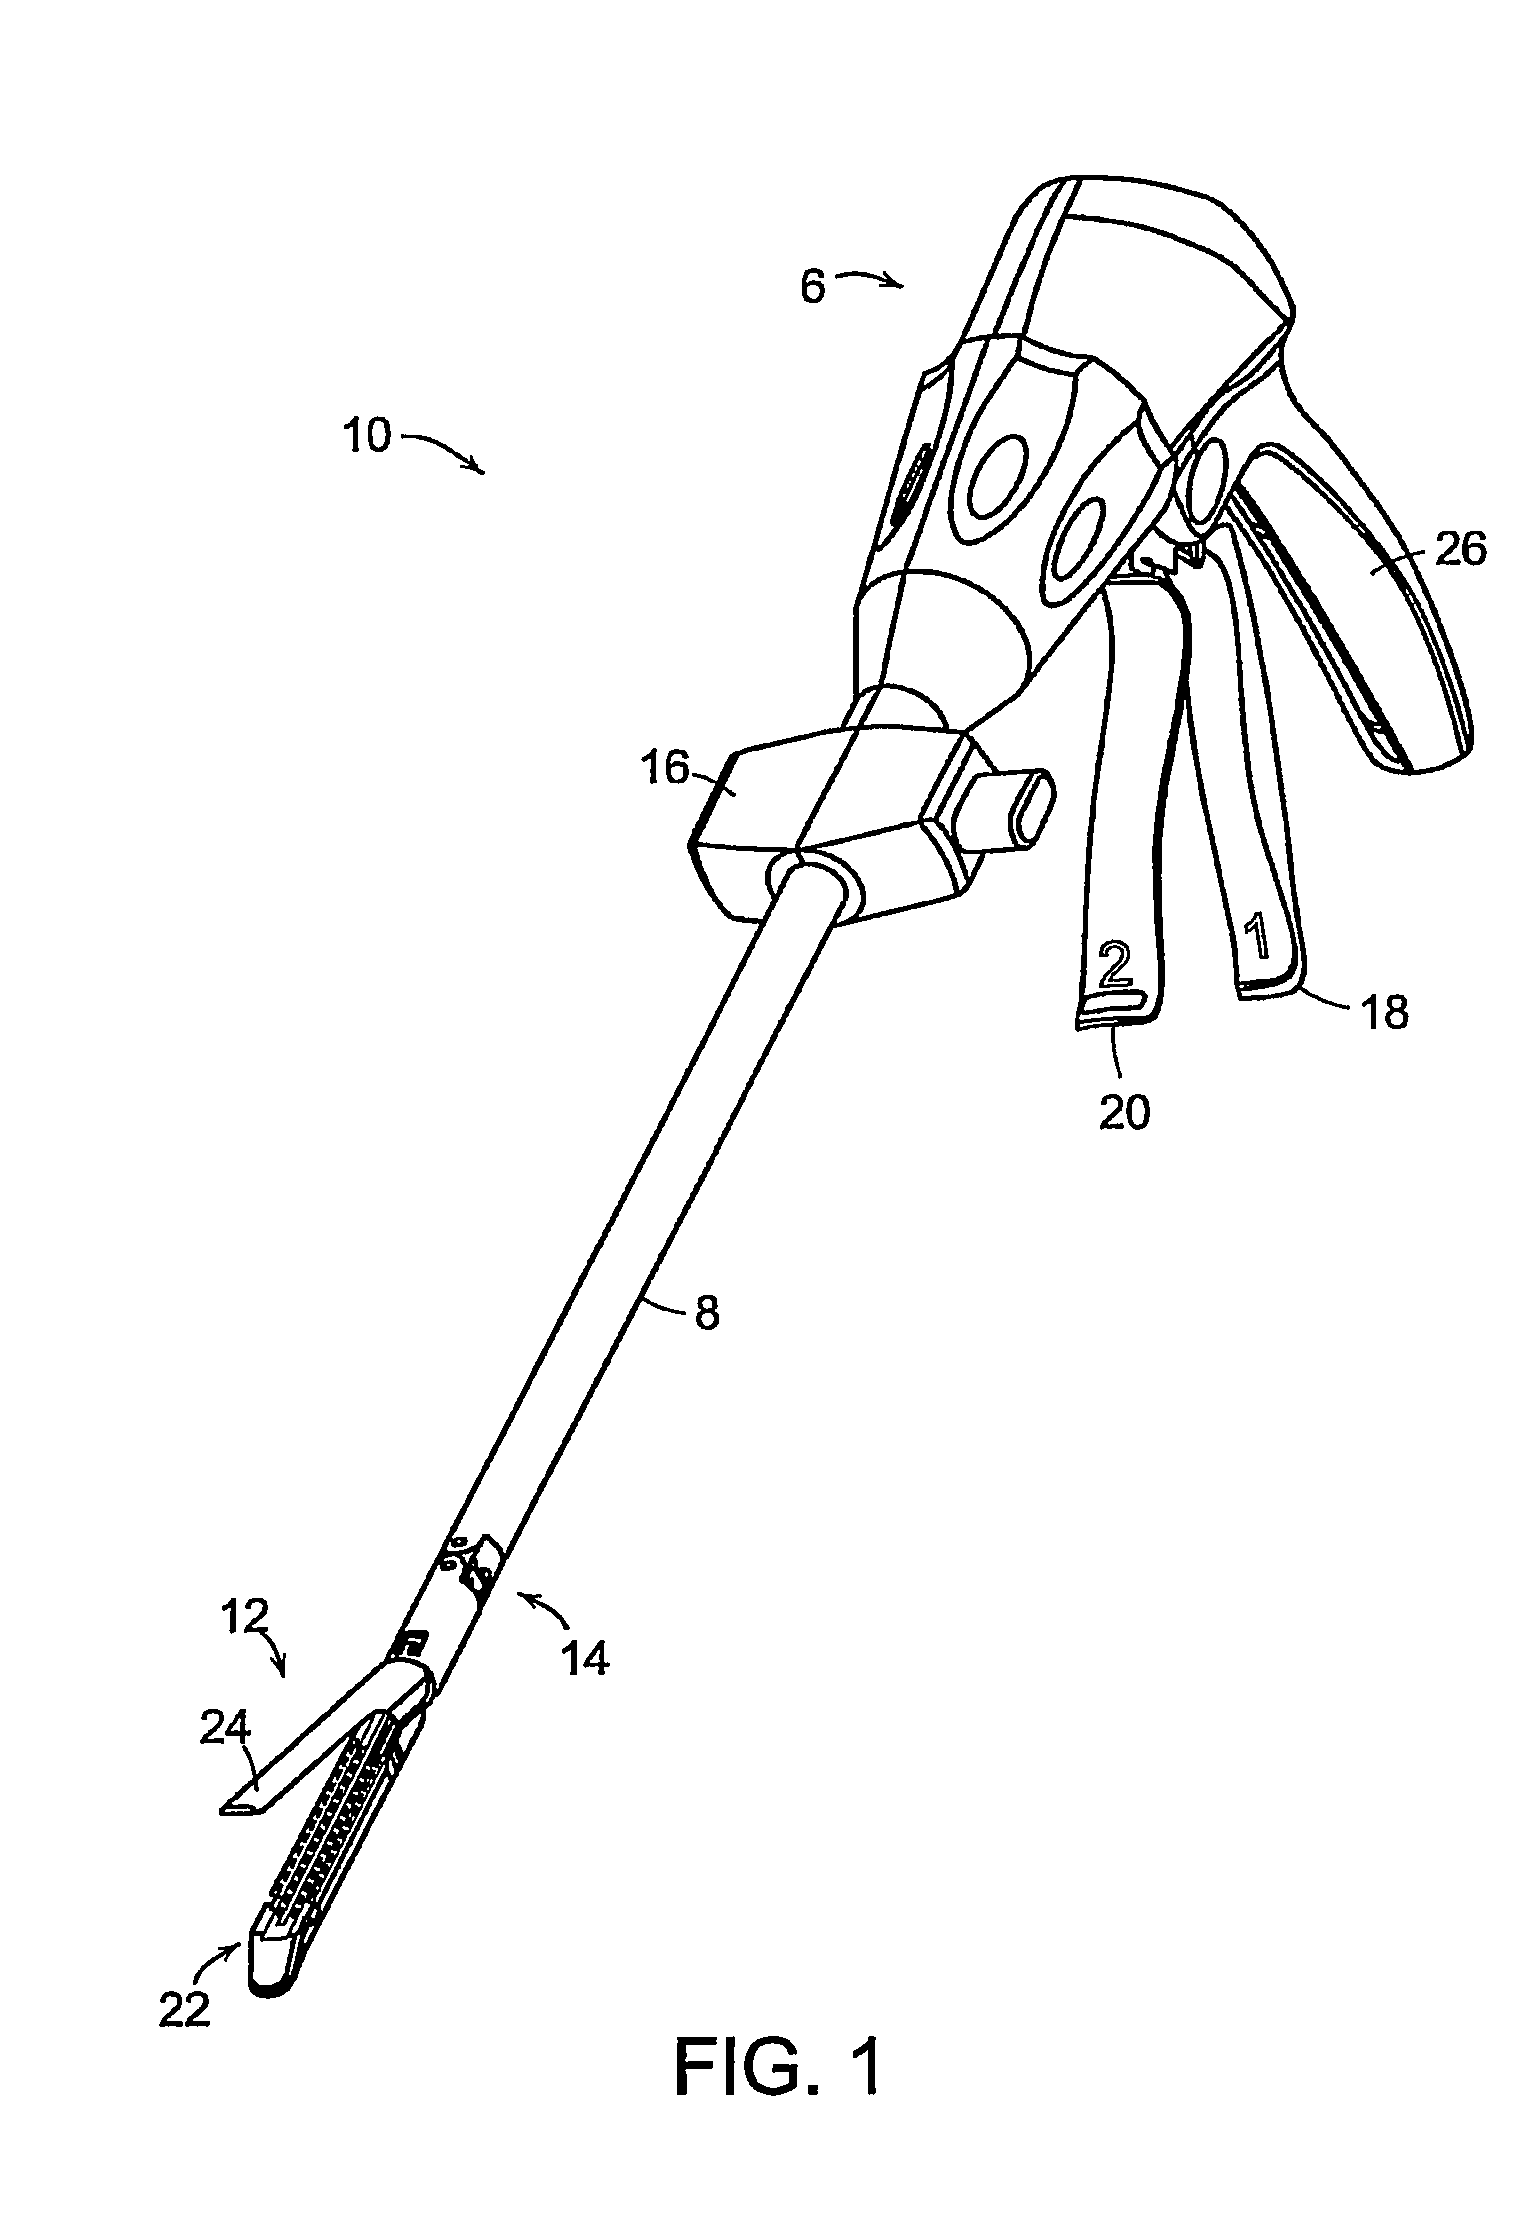 US9113874B2 - Surgical instrument system - Google Patents